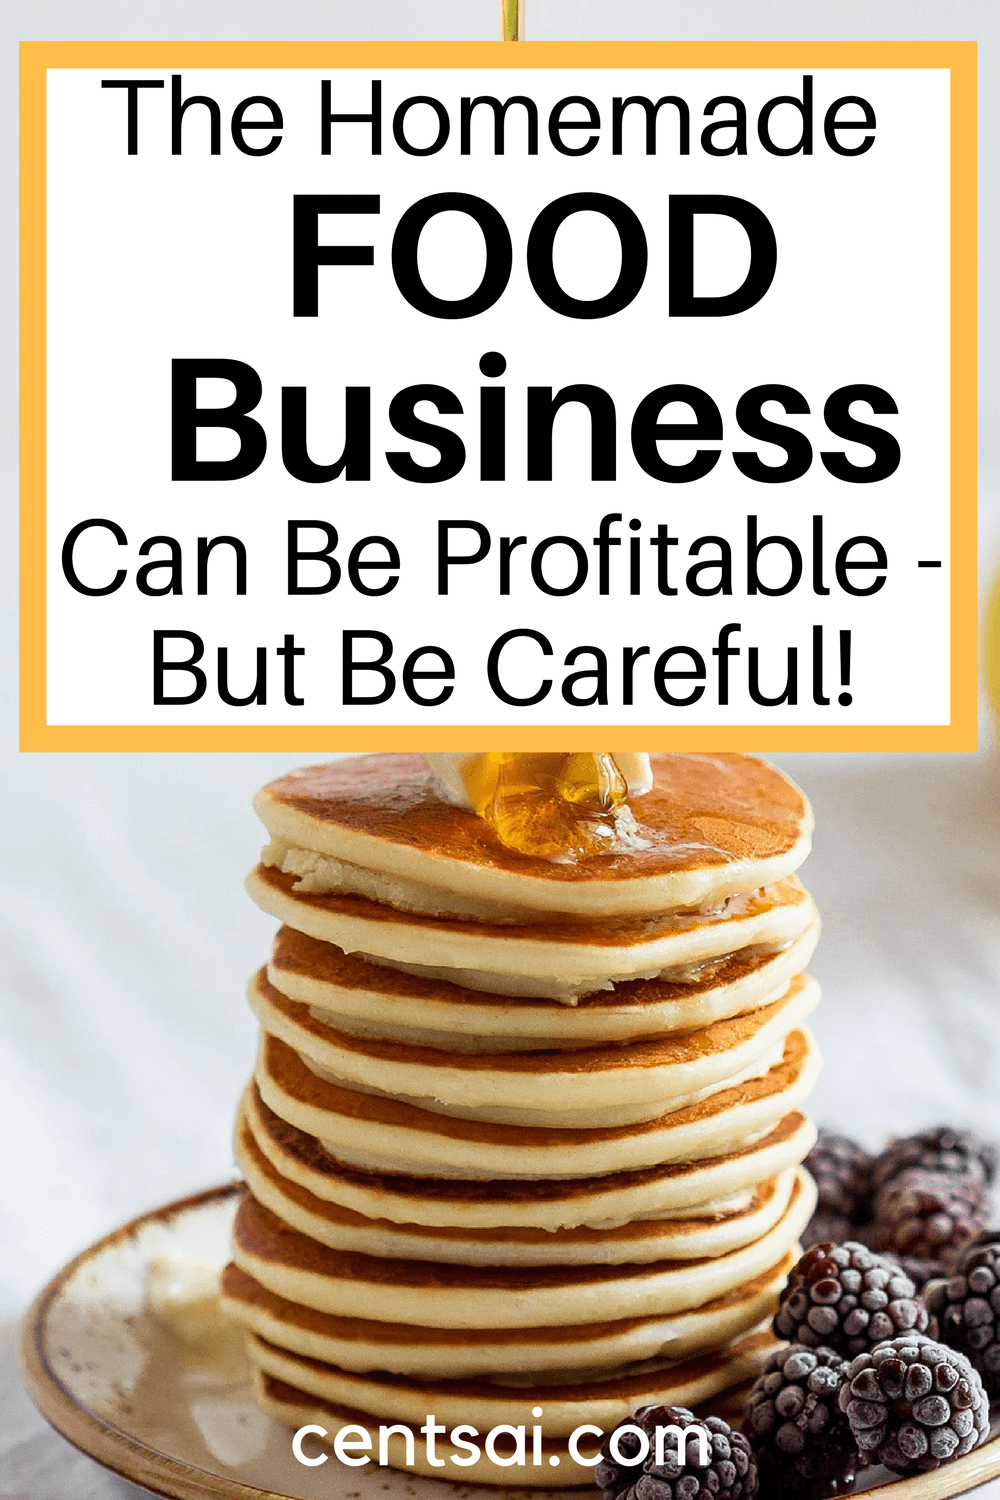 Could you use some extra money? Do you love to cook? Then starting a homemade food business might be just the thing for you. Read up on the perks, pitfalls, and how-tos of this sweet little side hustle, and cook your way to a delicious profit. #CentSai #sidehustleideas #sidehustletips #makemoremoney #sidehustleideasathome